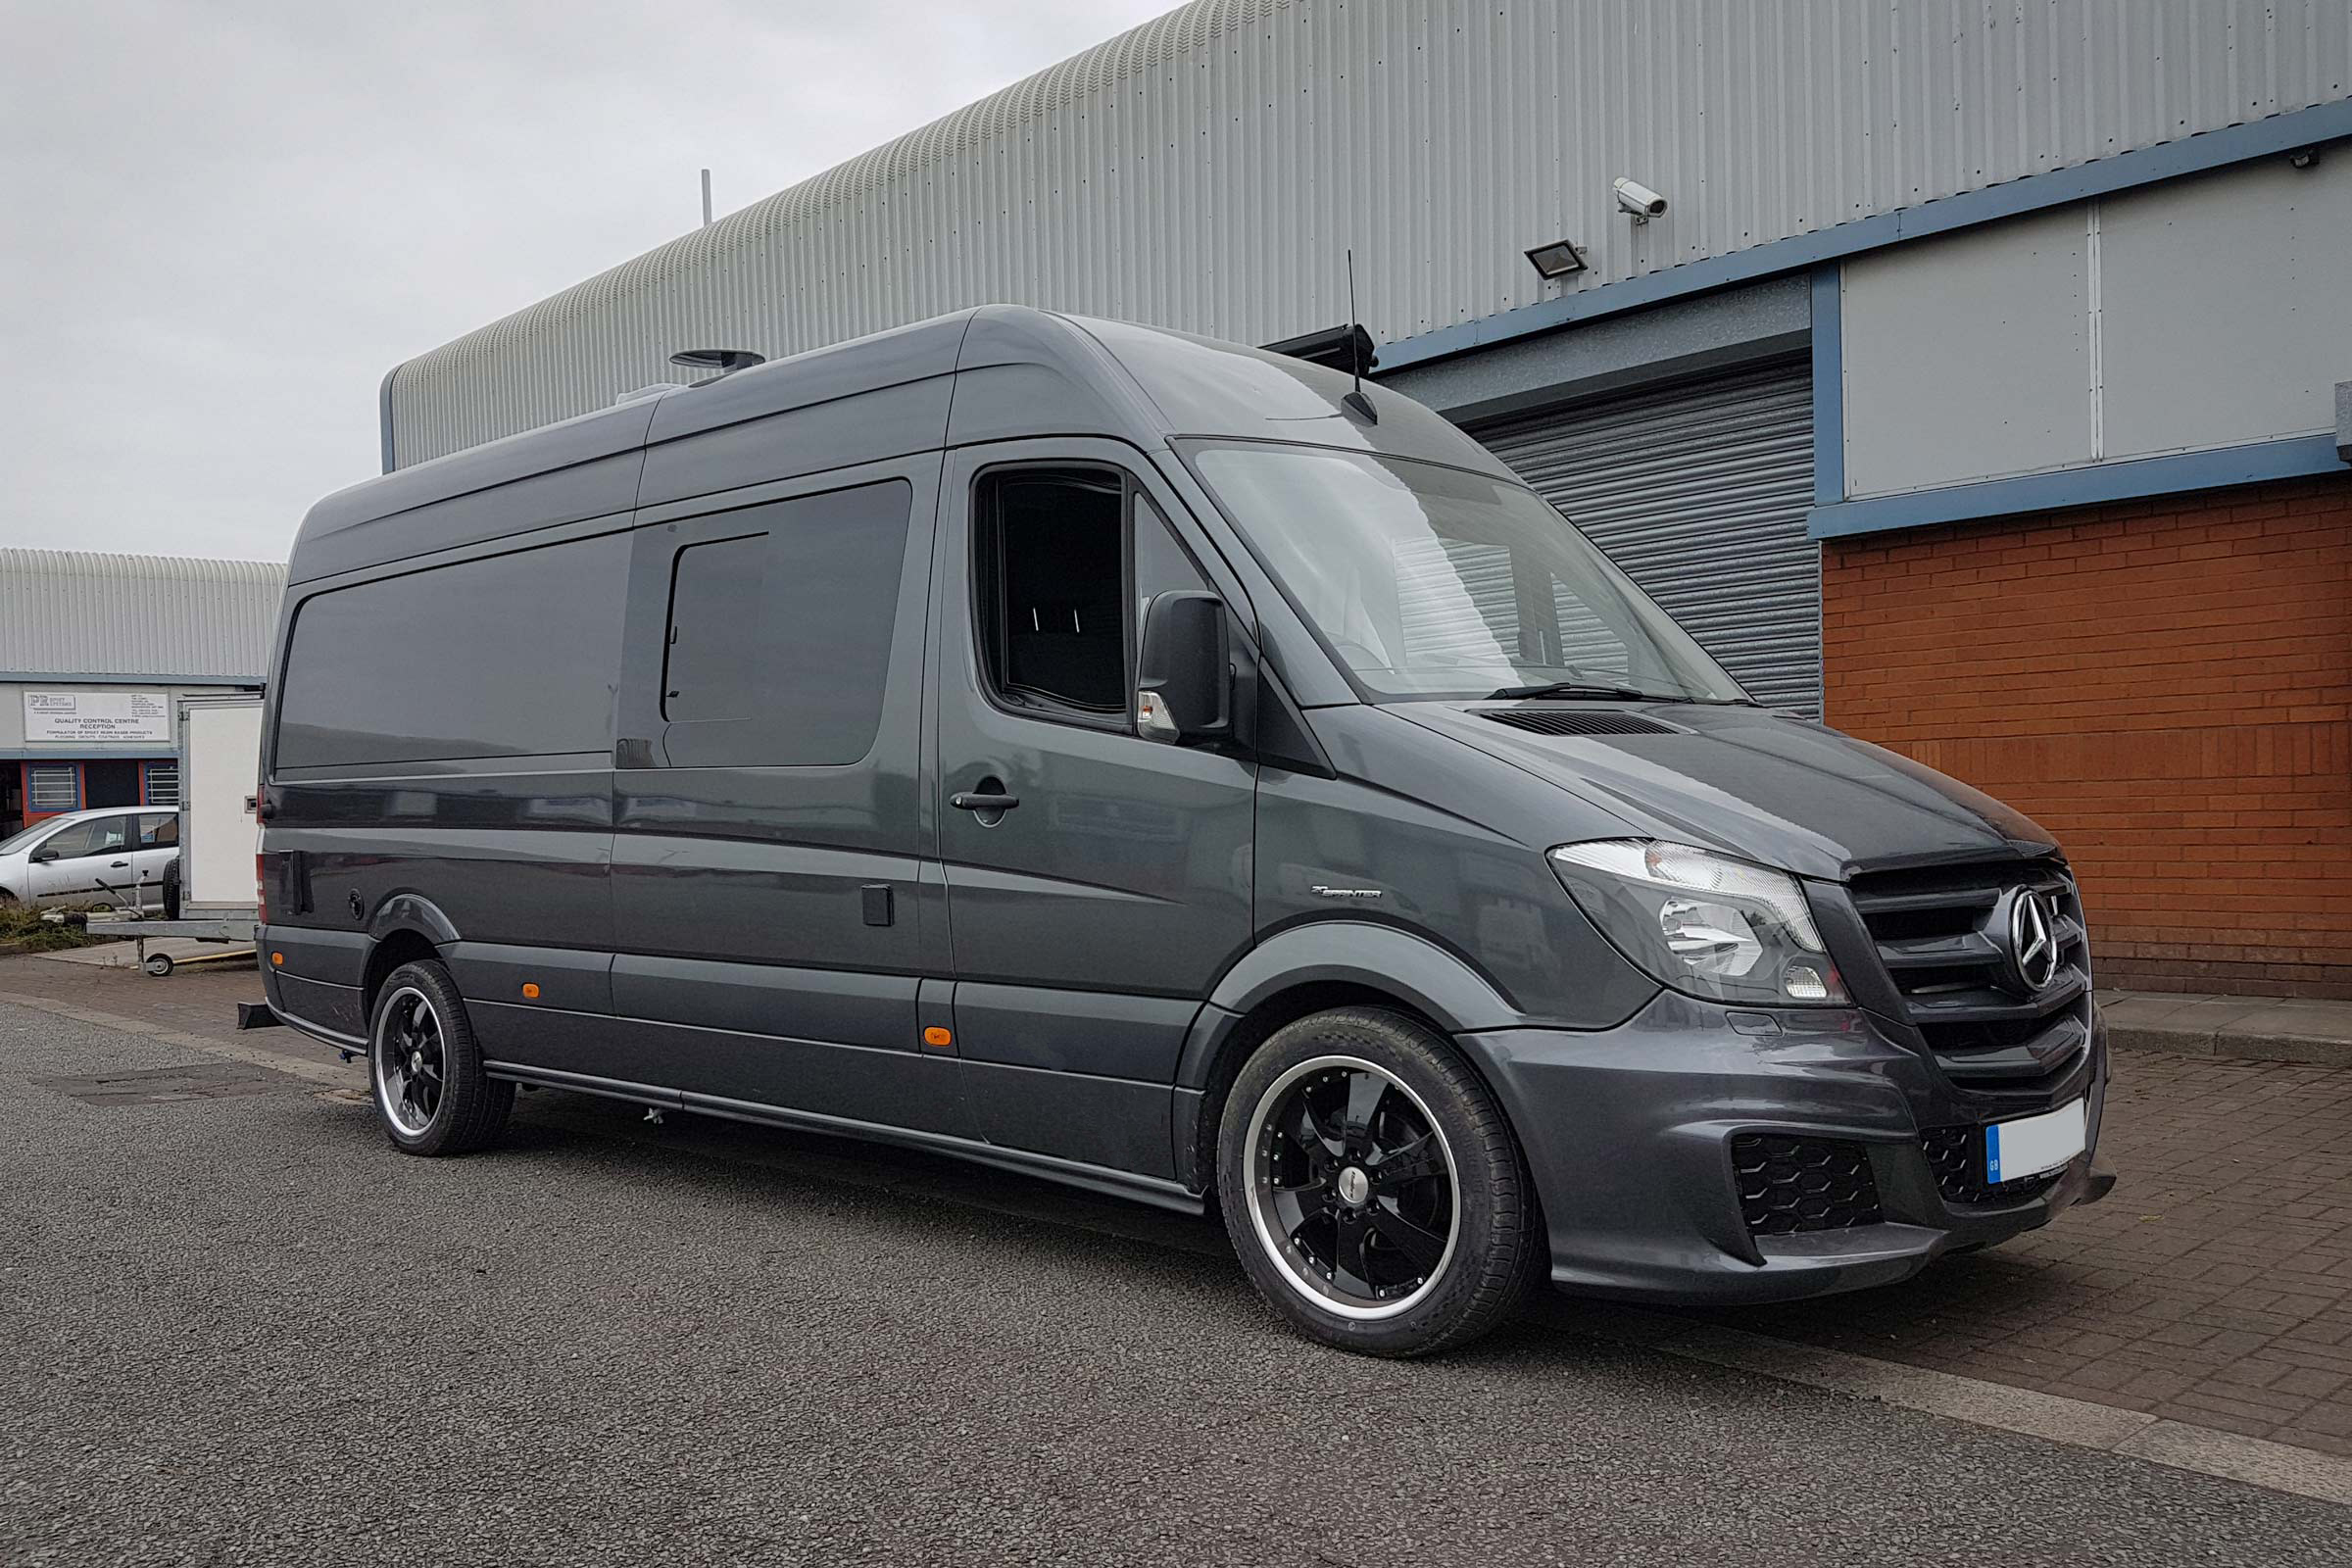 Merc Sprinter - Sports Tourer | Safe T bar rear bumper - EXTRA STRONG STEP / BUMPER